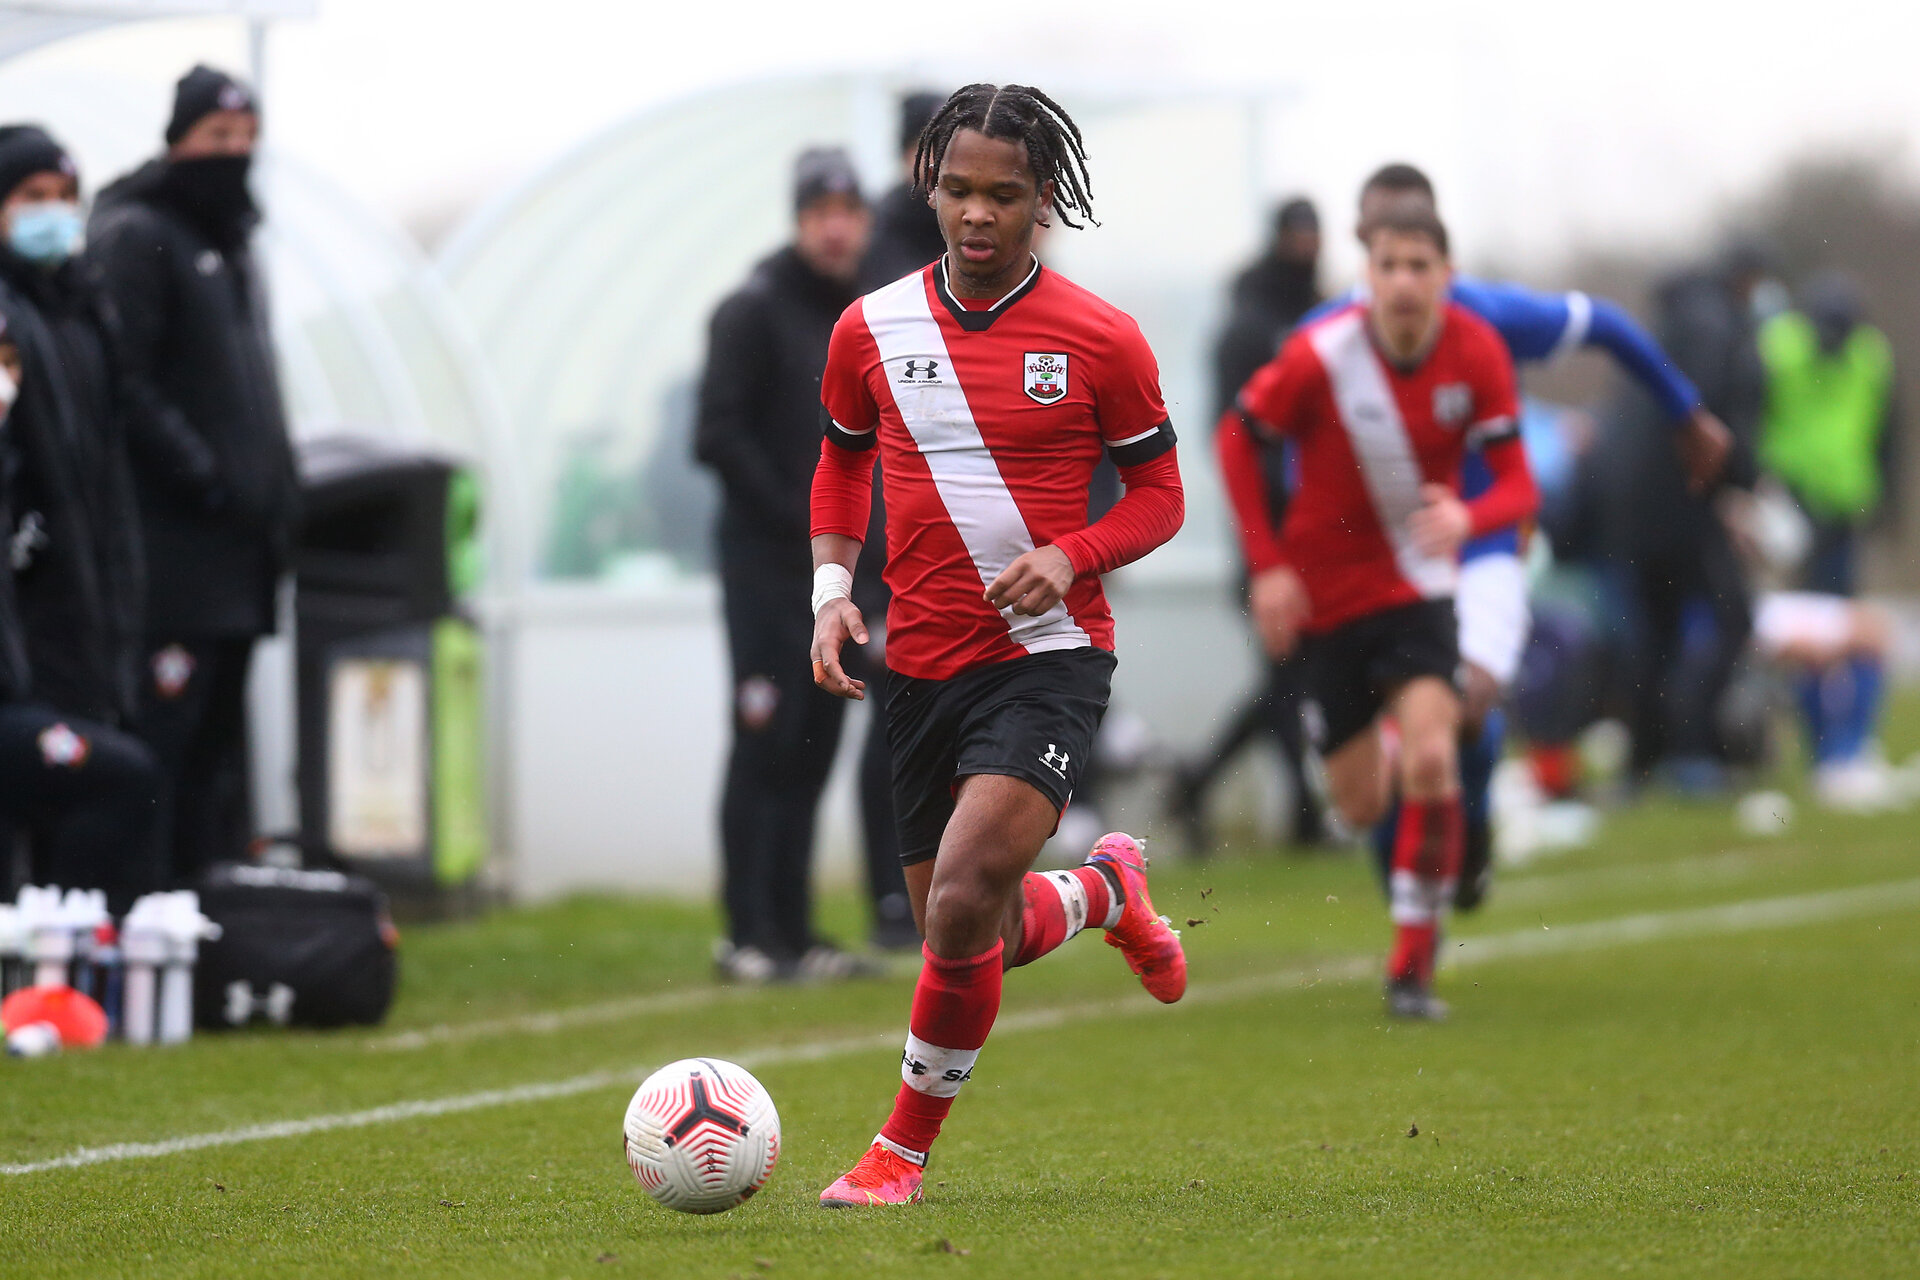 BRIGHTON, ENGLAND - FEBRUARY 16: Diamond Edwards of Southampton during the Premier League U18s match between Brighton & Hove Albion and Southampton U18 at The Amex Elite Football Performance Center on February 16, 2021 in Brighton, England. (Photo by Isabelle Field/Southamtpon FC)